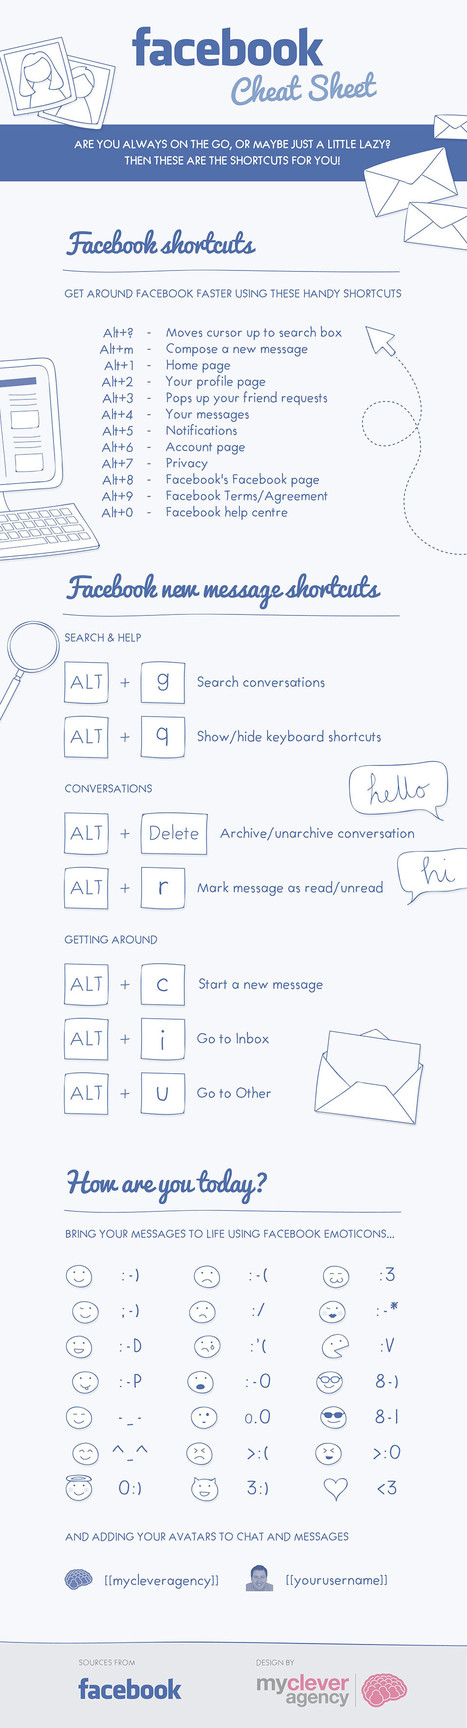 Facebook Cheat Sheet [INFOGRAPHIC] | Wall Of Frames | Scoop.it